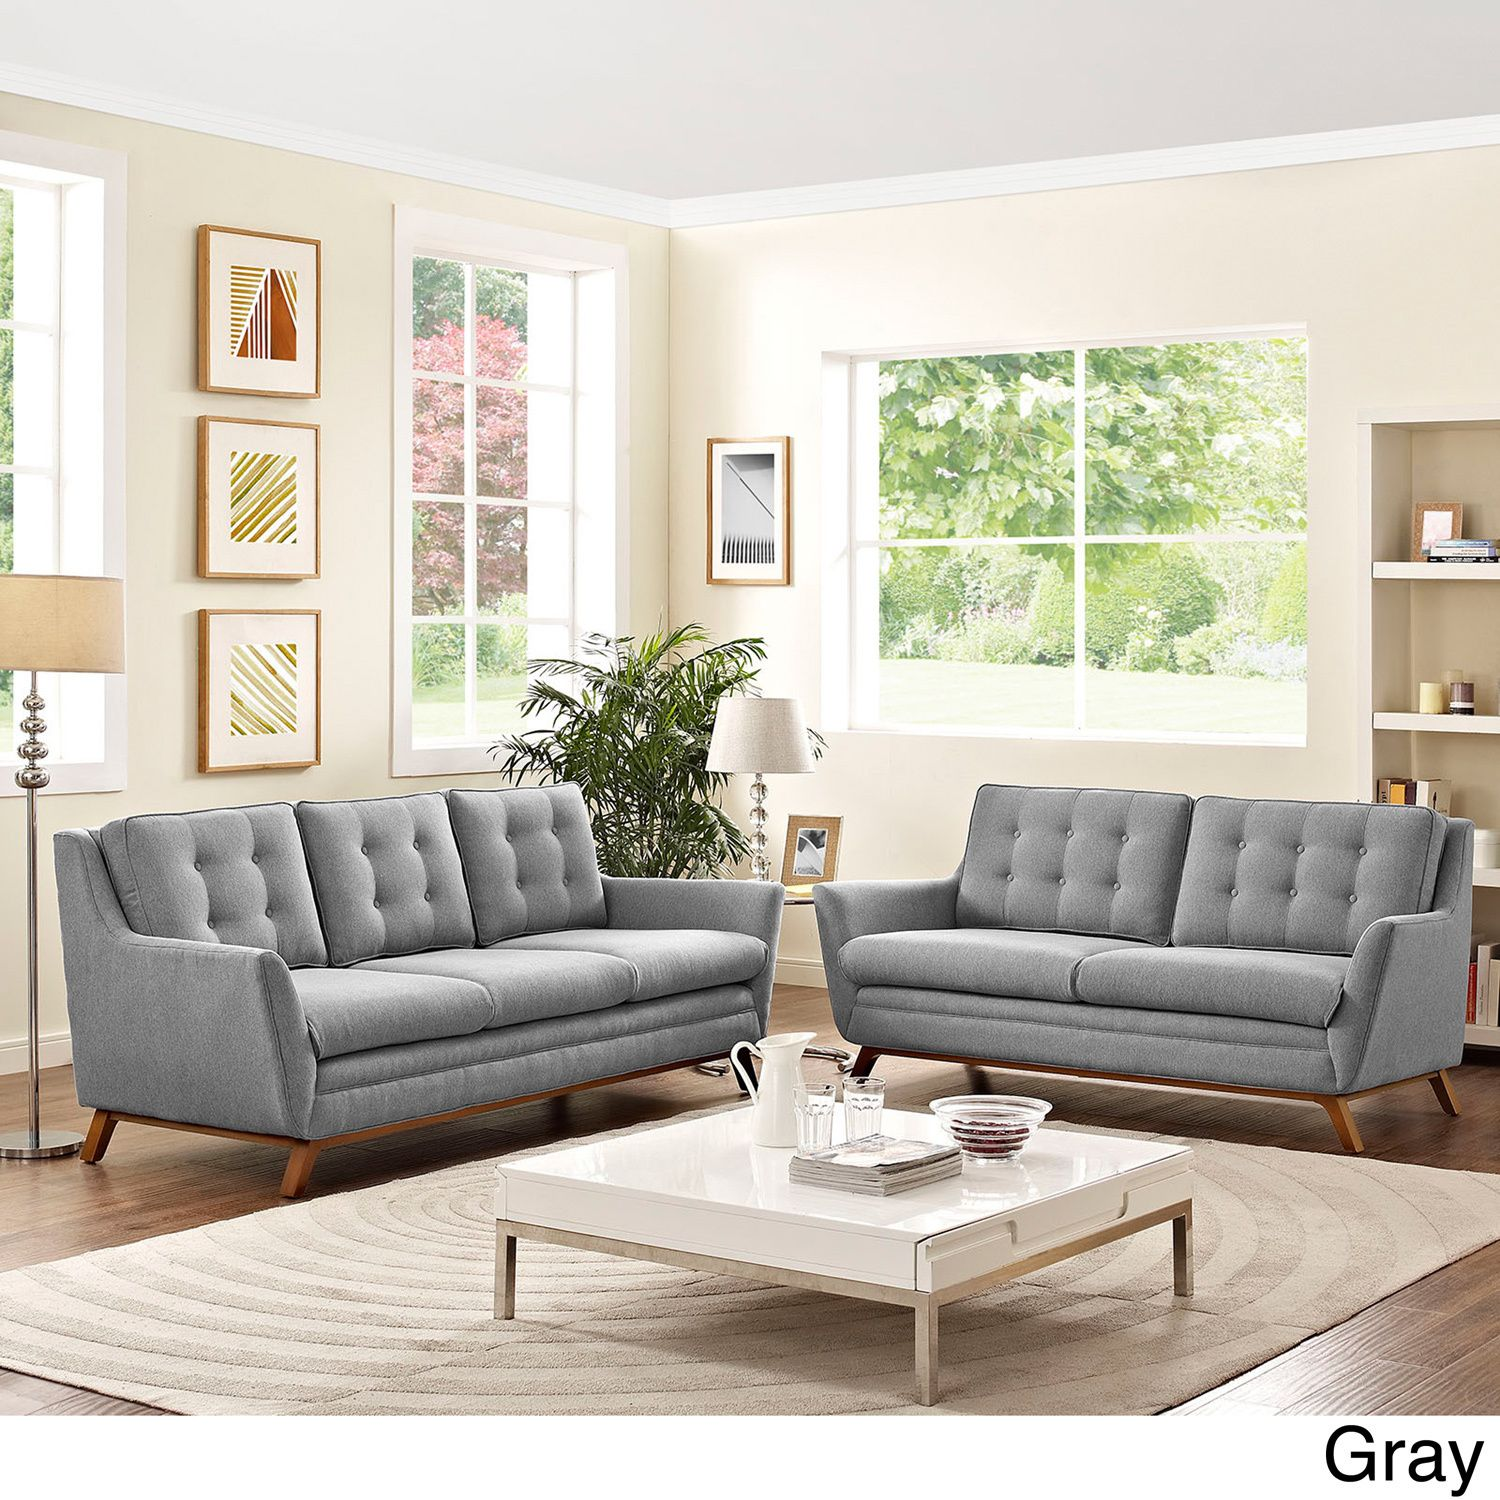 Modway Beguile Tufted Fabric Sofa and Loveseat Set (Gray